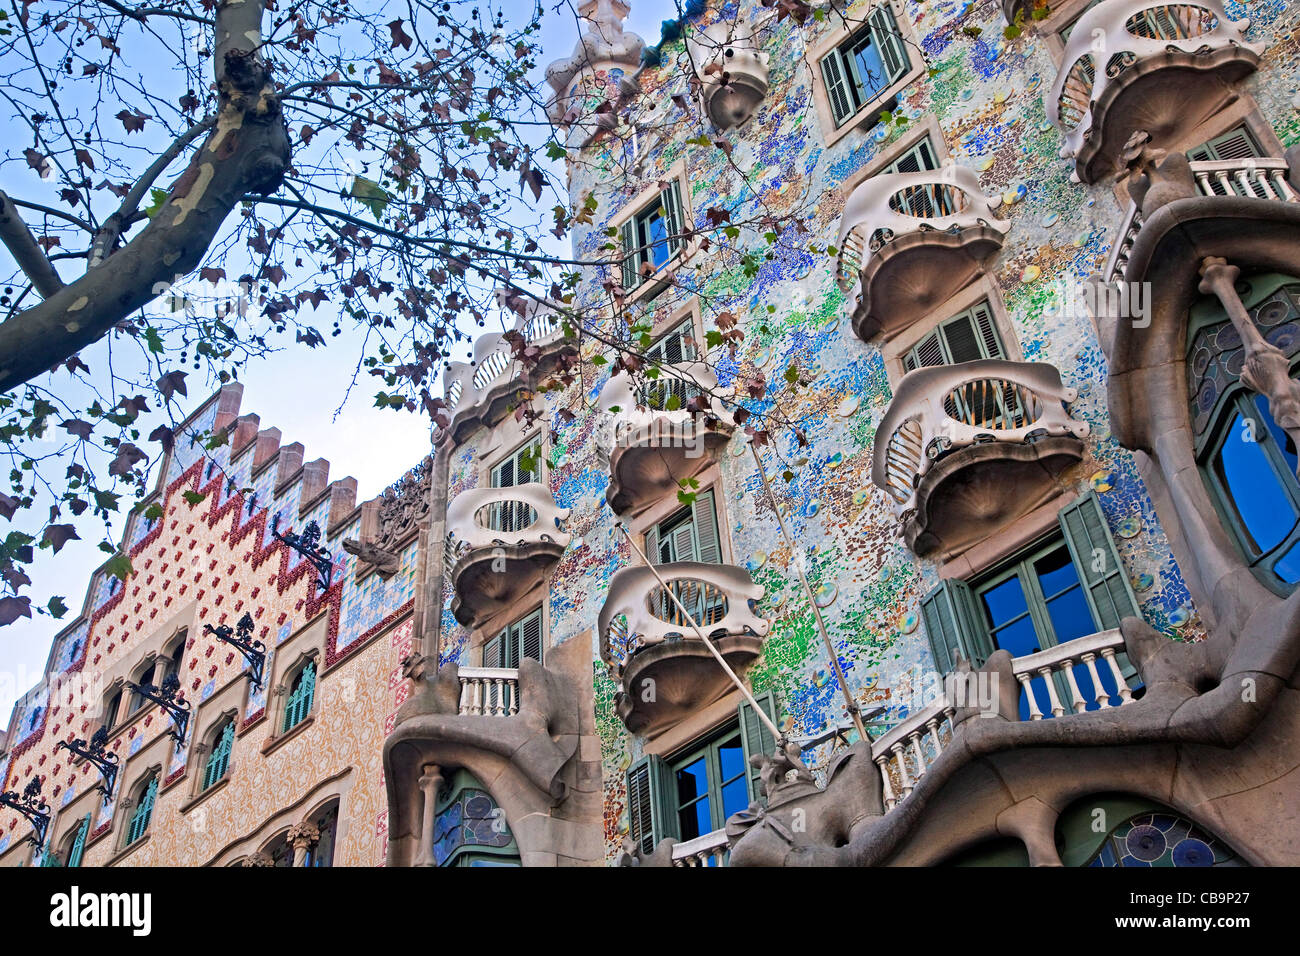 Casa Milà / La Pedrera, building designed by the Catalan architect Antoni Gaudí, Barcelona, Spain - Stock Image